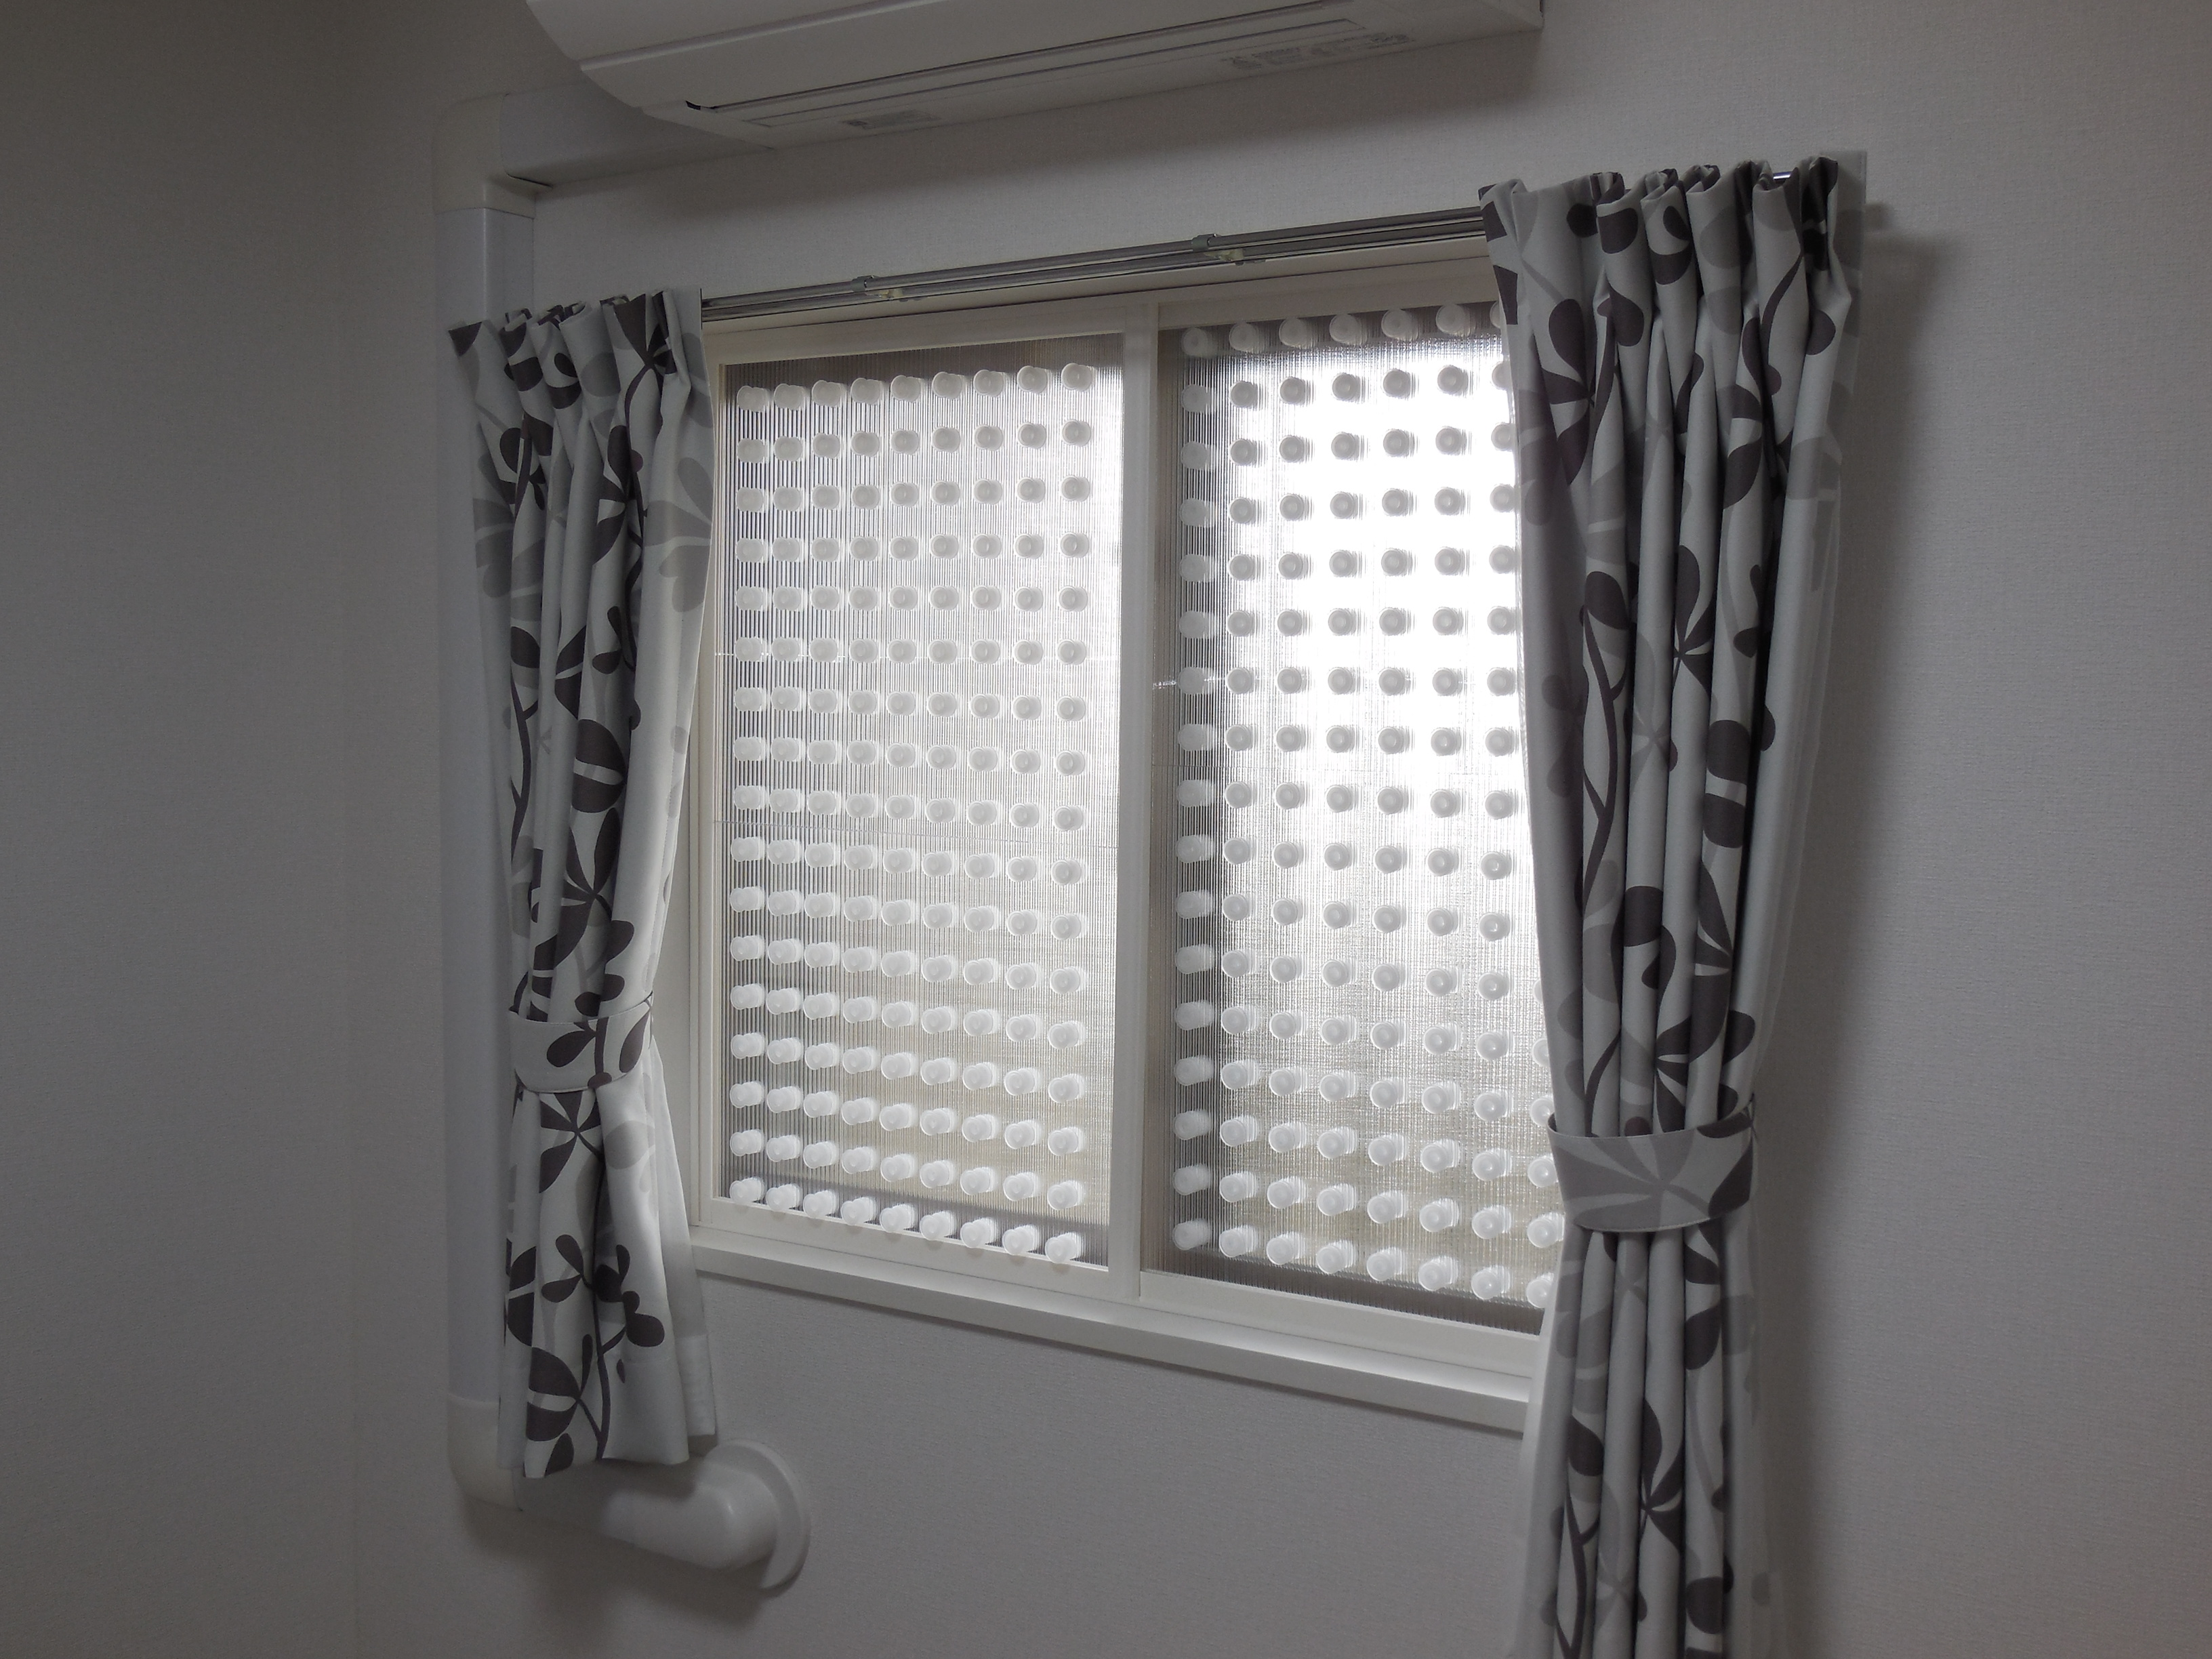 Elegant How to soundproof A Window From Traffic Noise